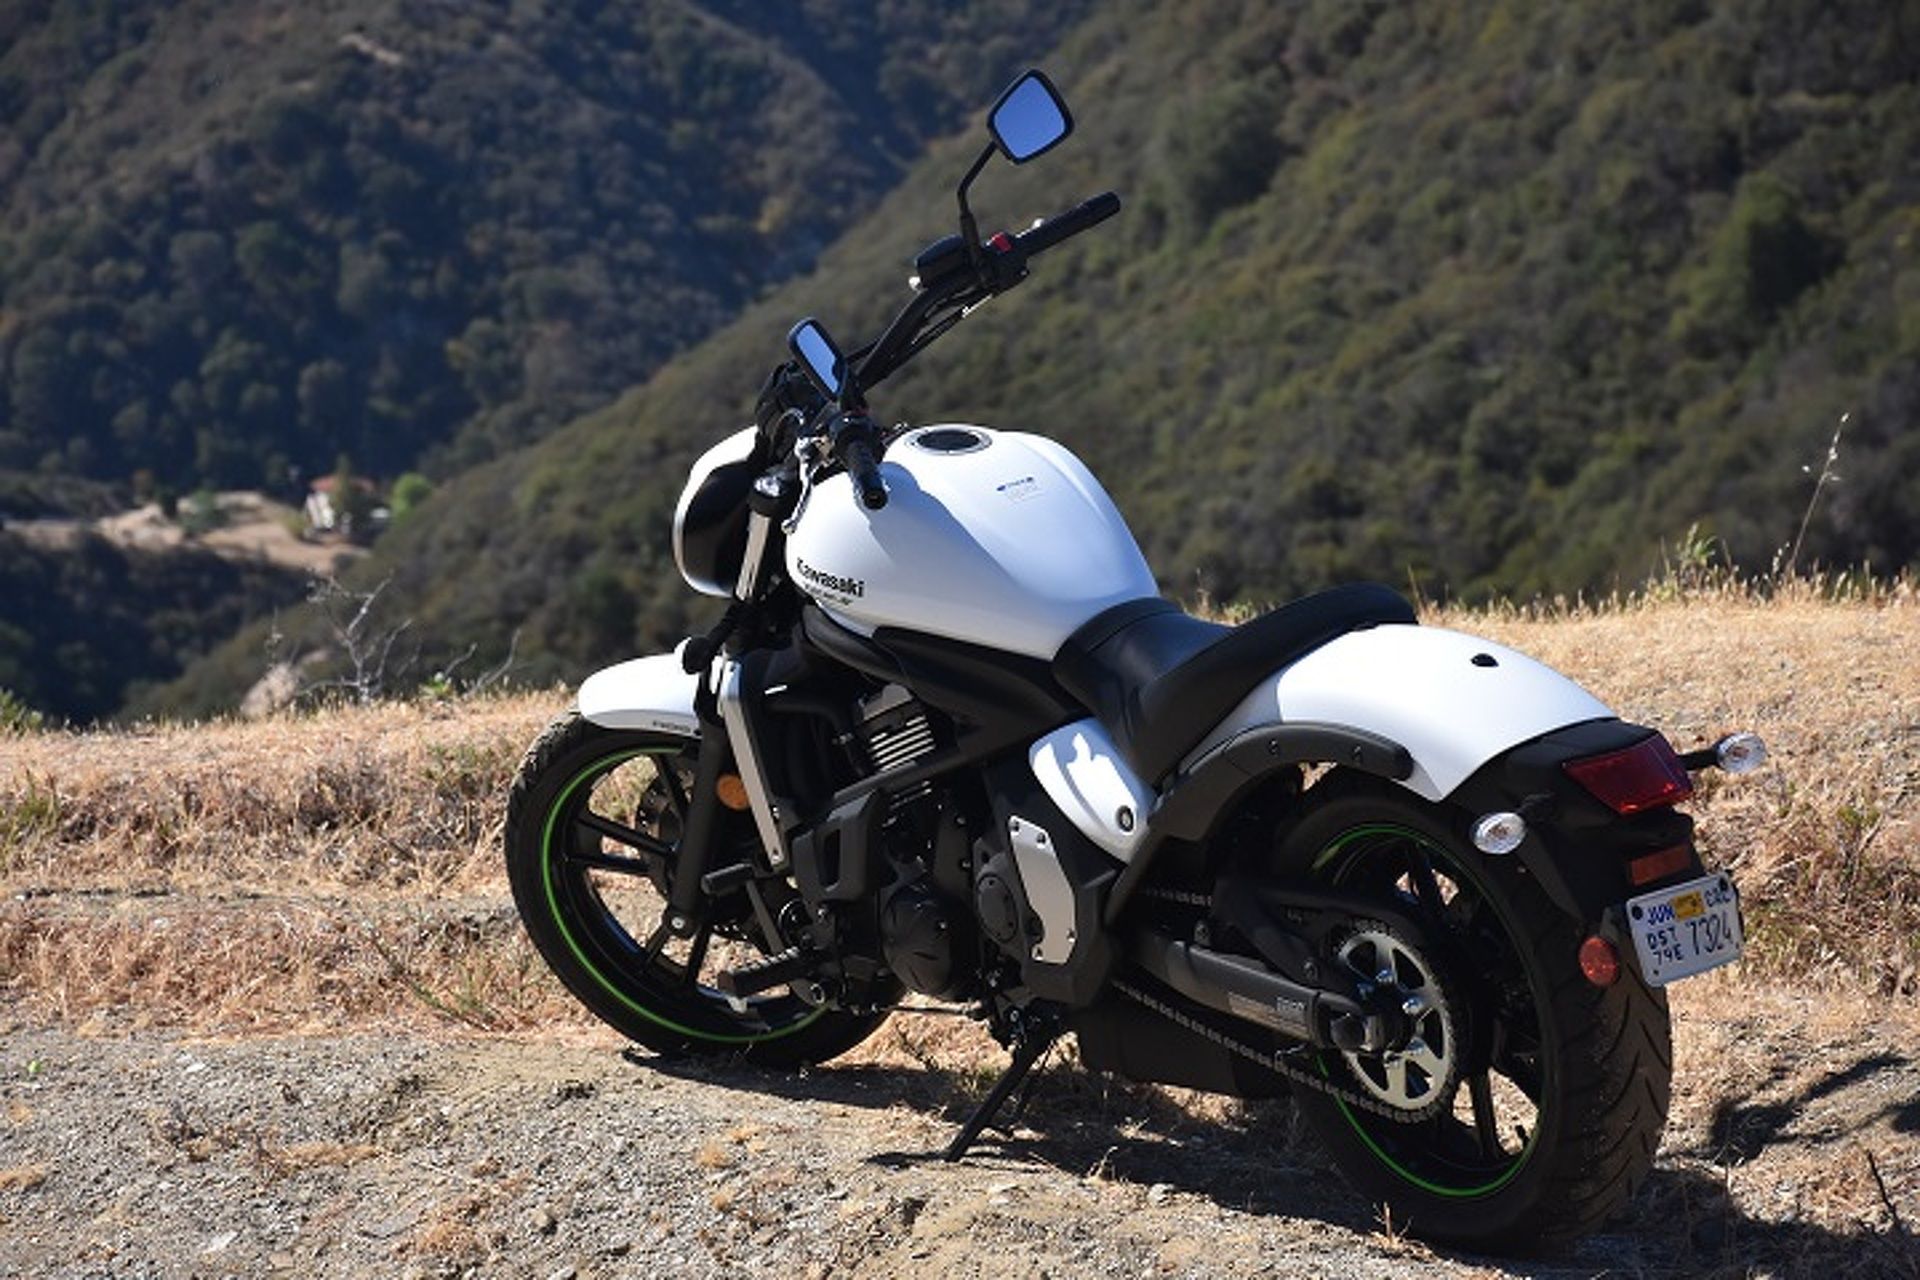 We're Riding Around LA on a Kawasaki Vulcan S